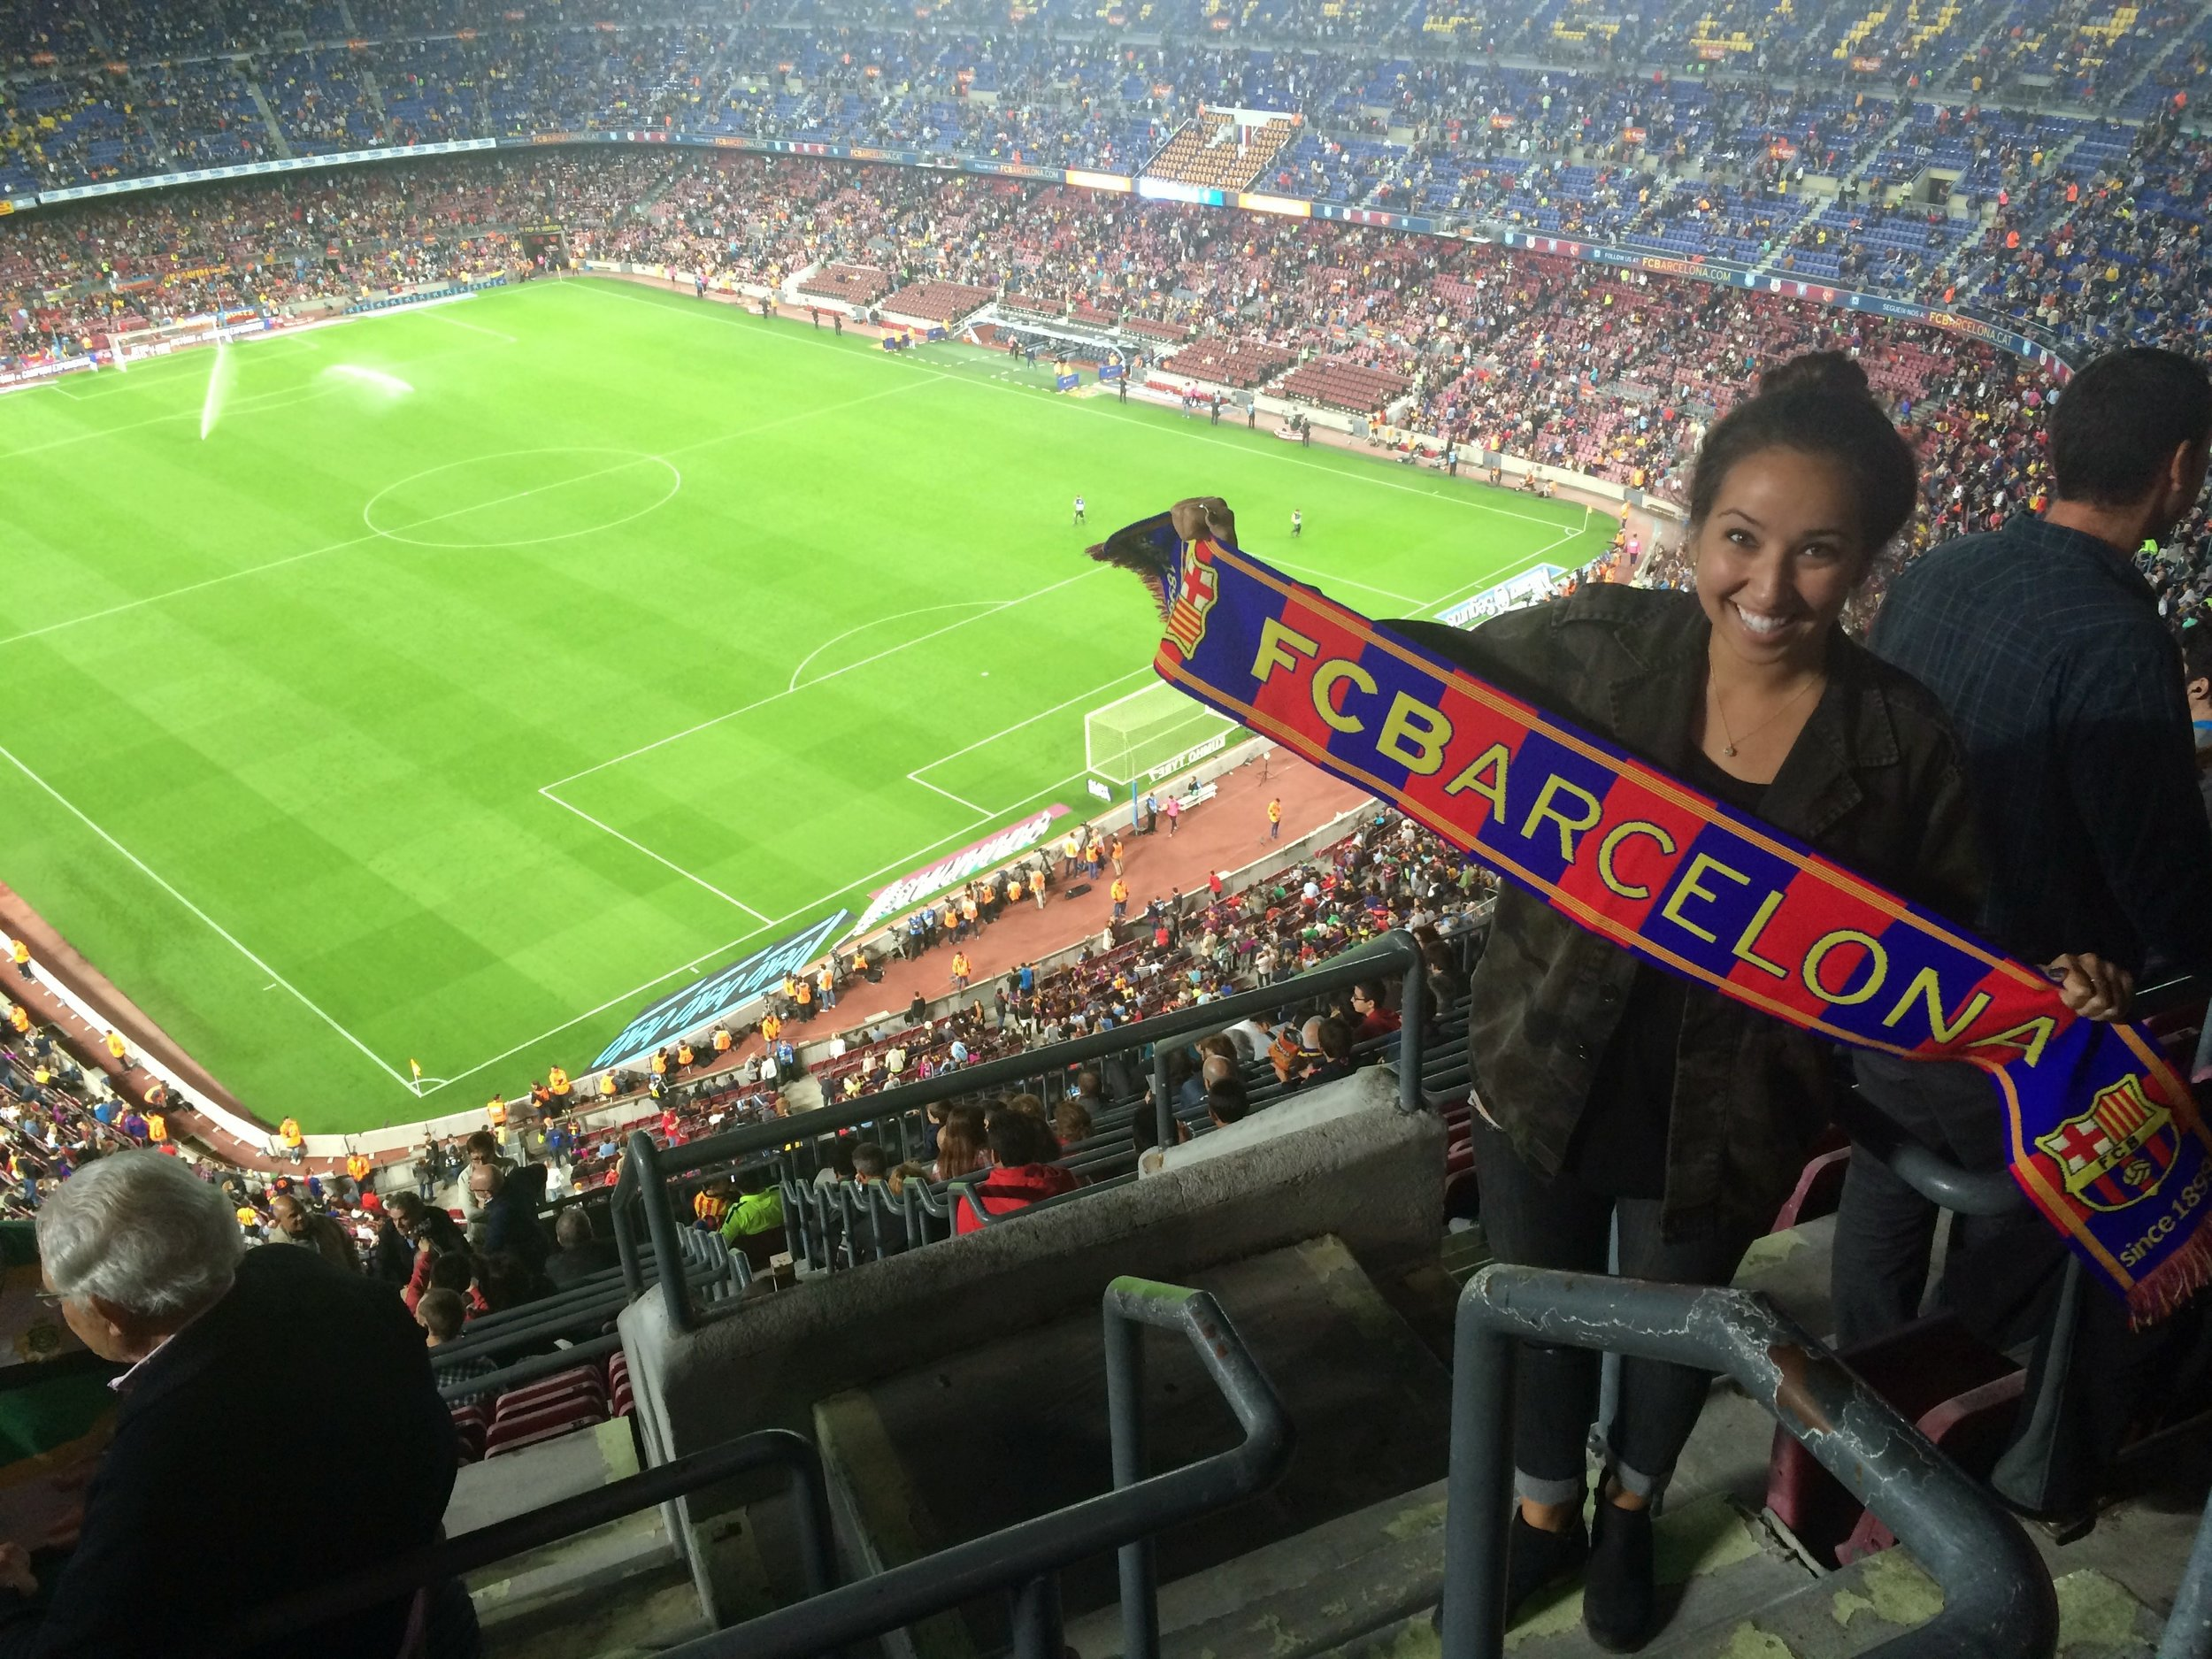 At Camp Nou in Barcelona seeing my baby Messi play